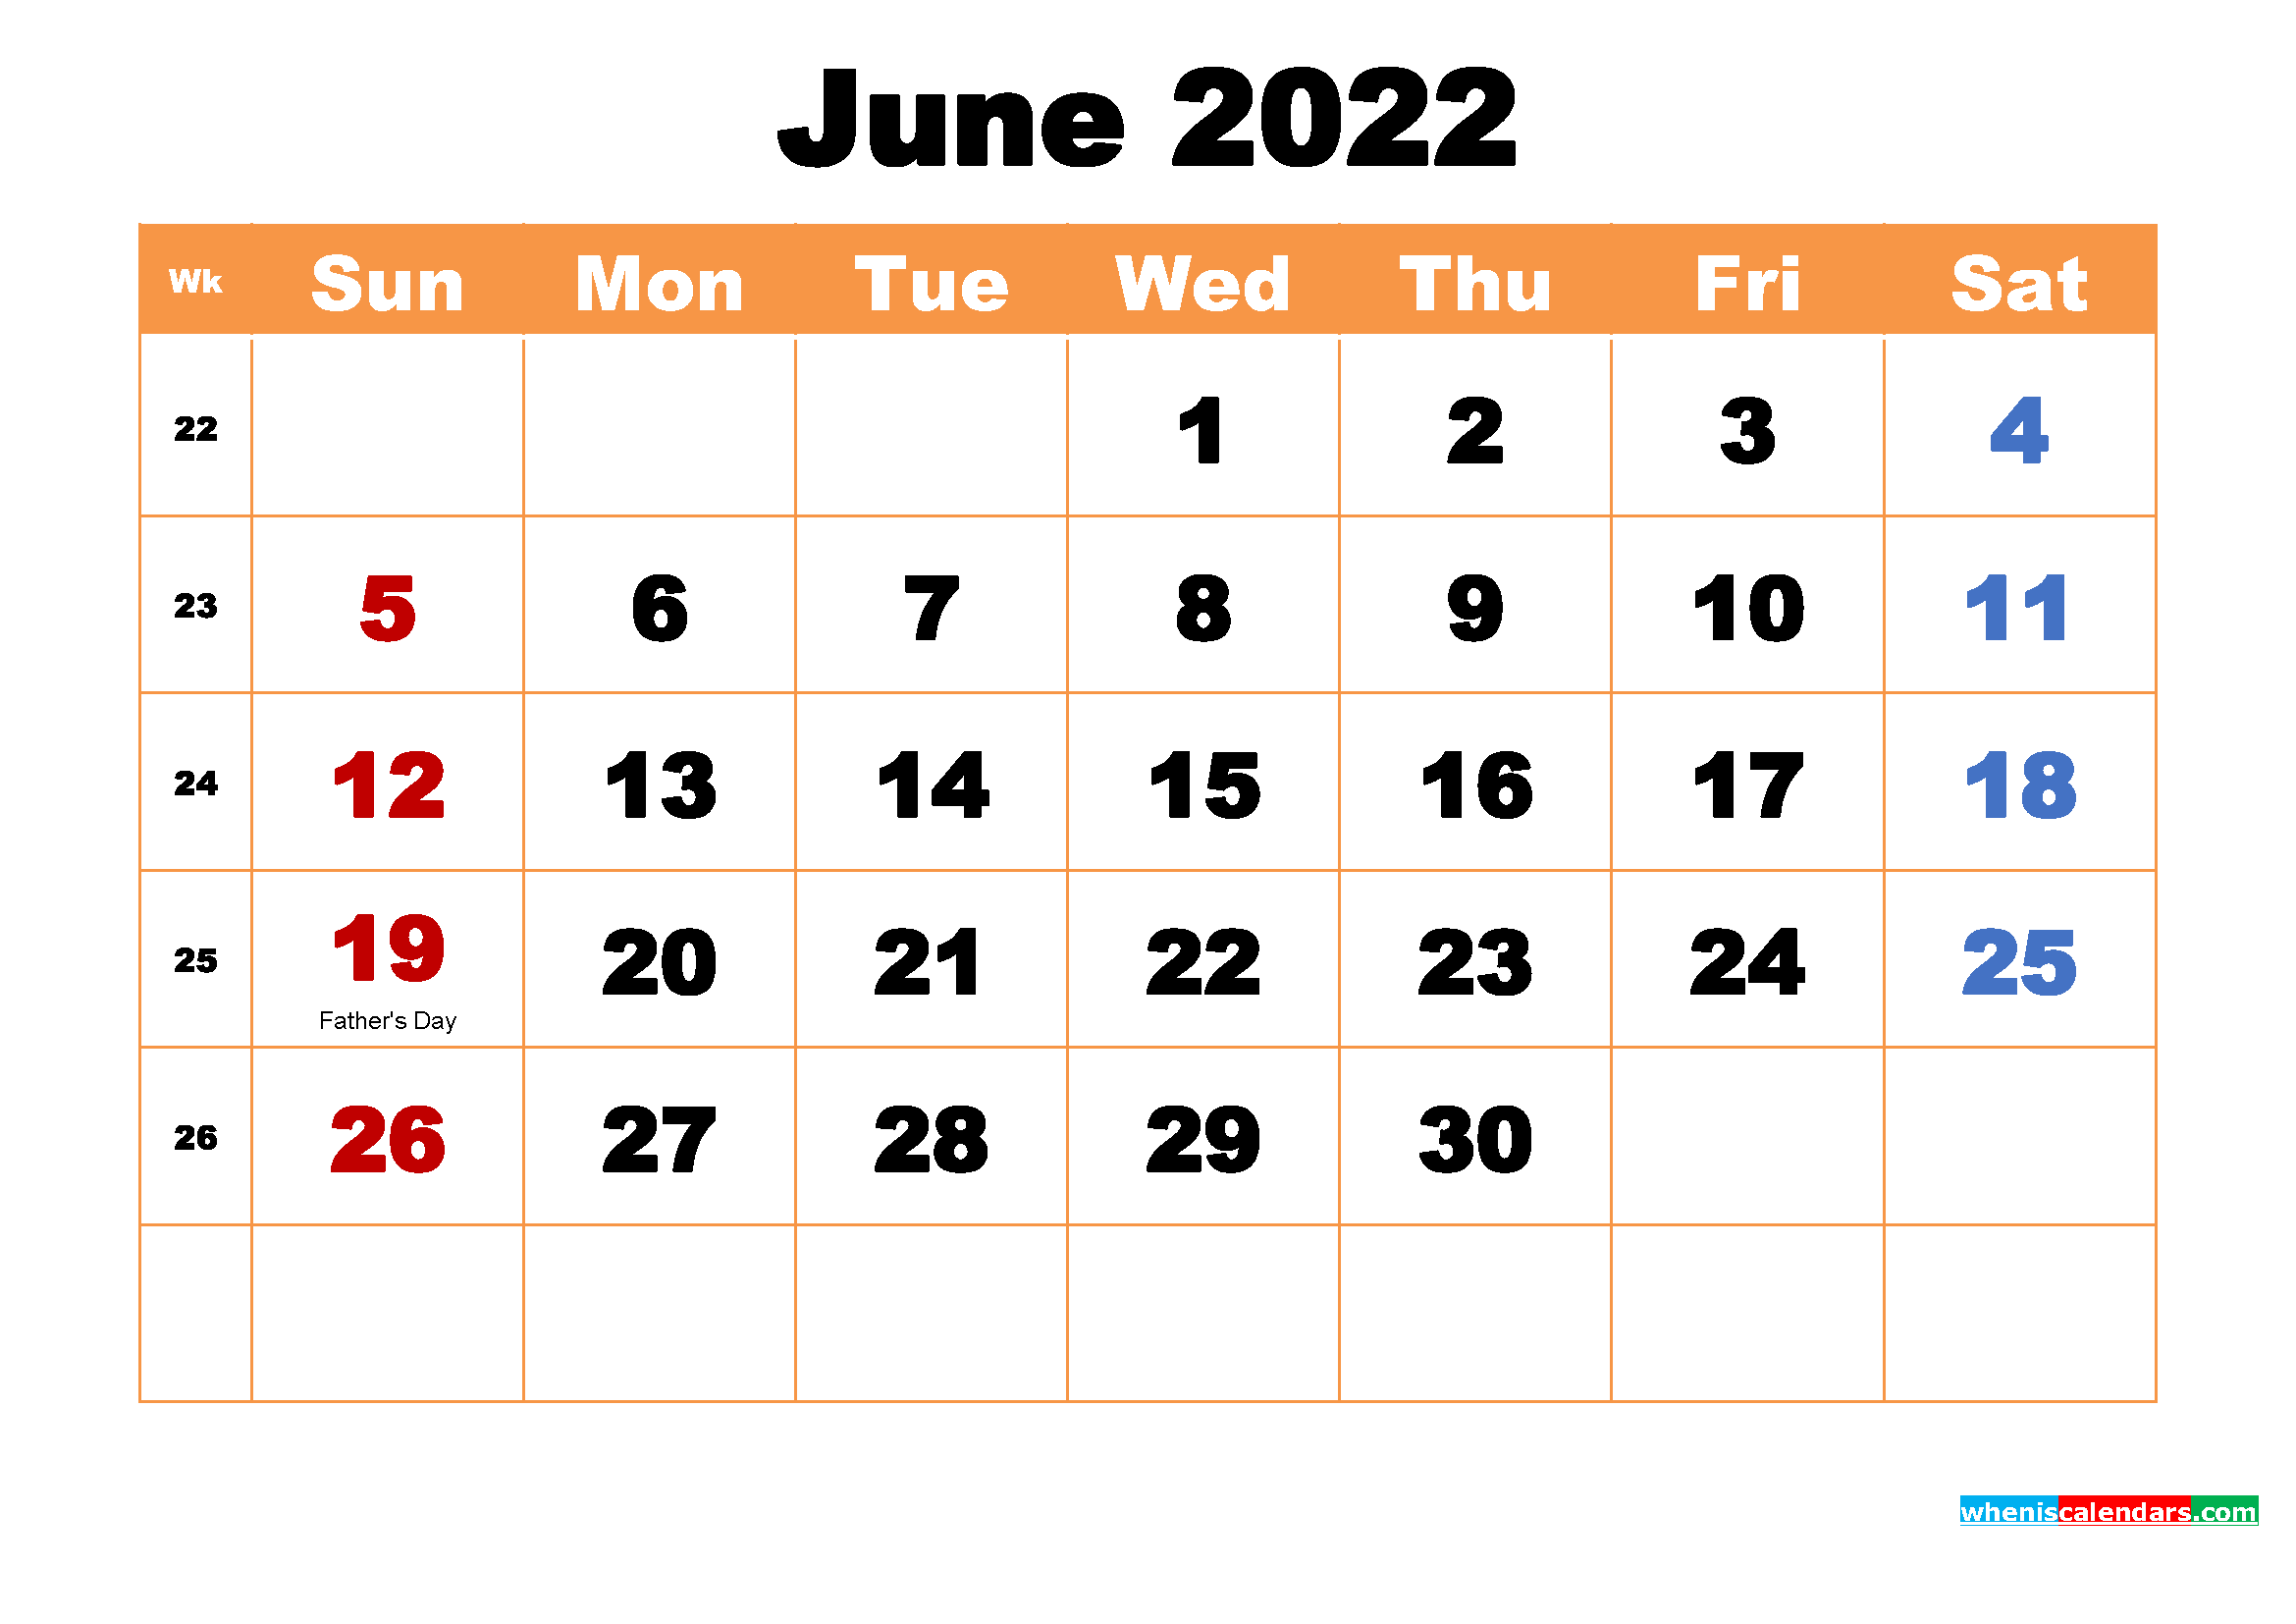 Printable Calendar for June 2022